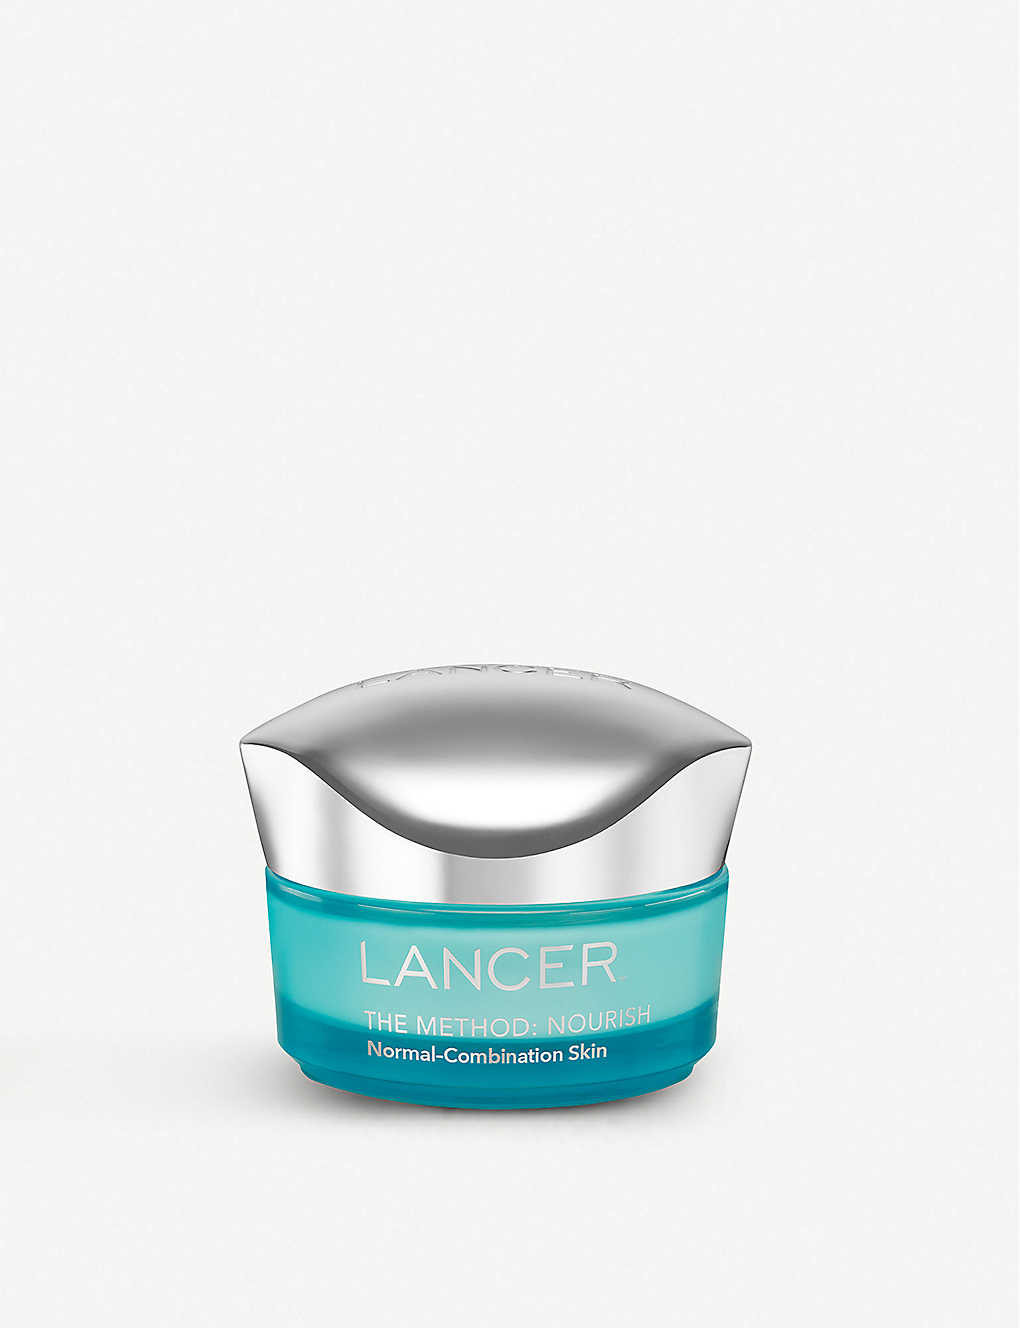 LANCER: The Method: Nourish Normal-Combination Skin 50ml